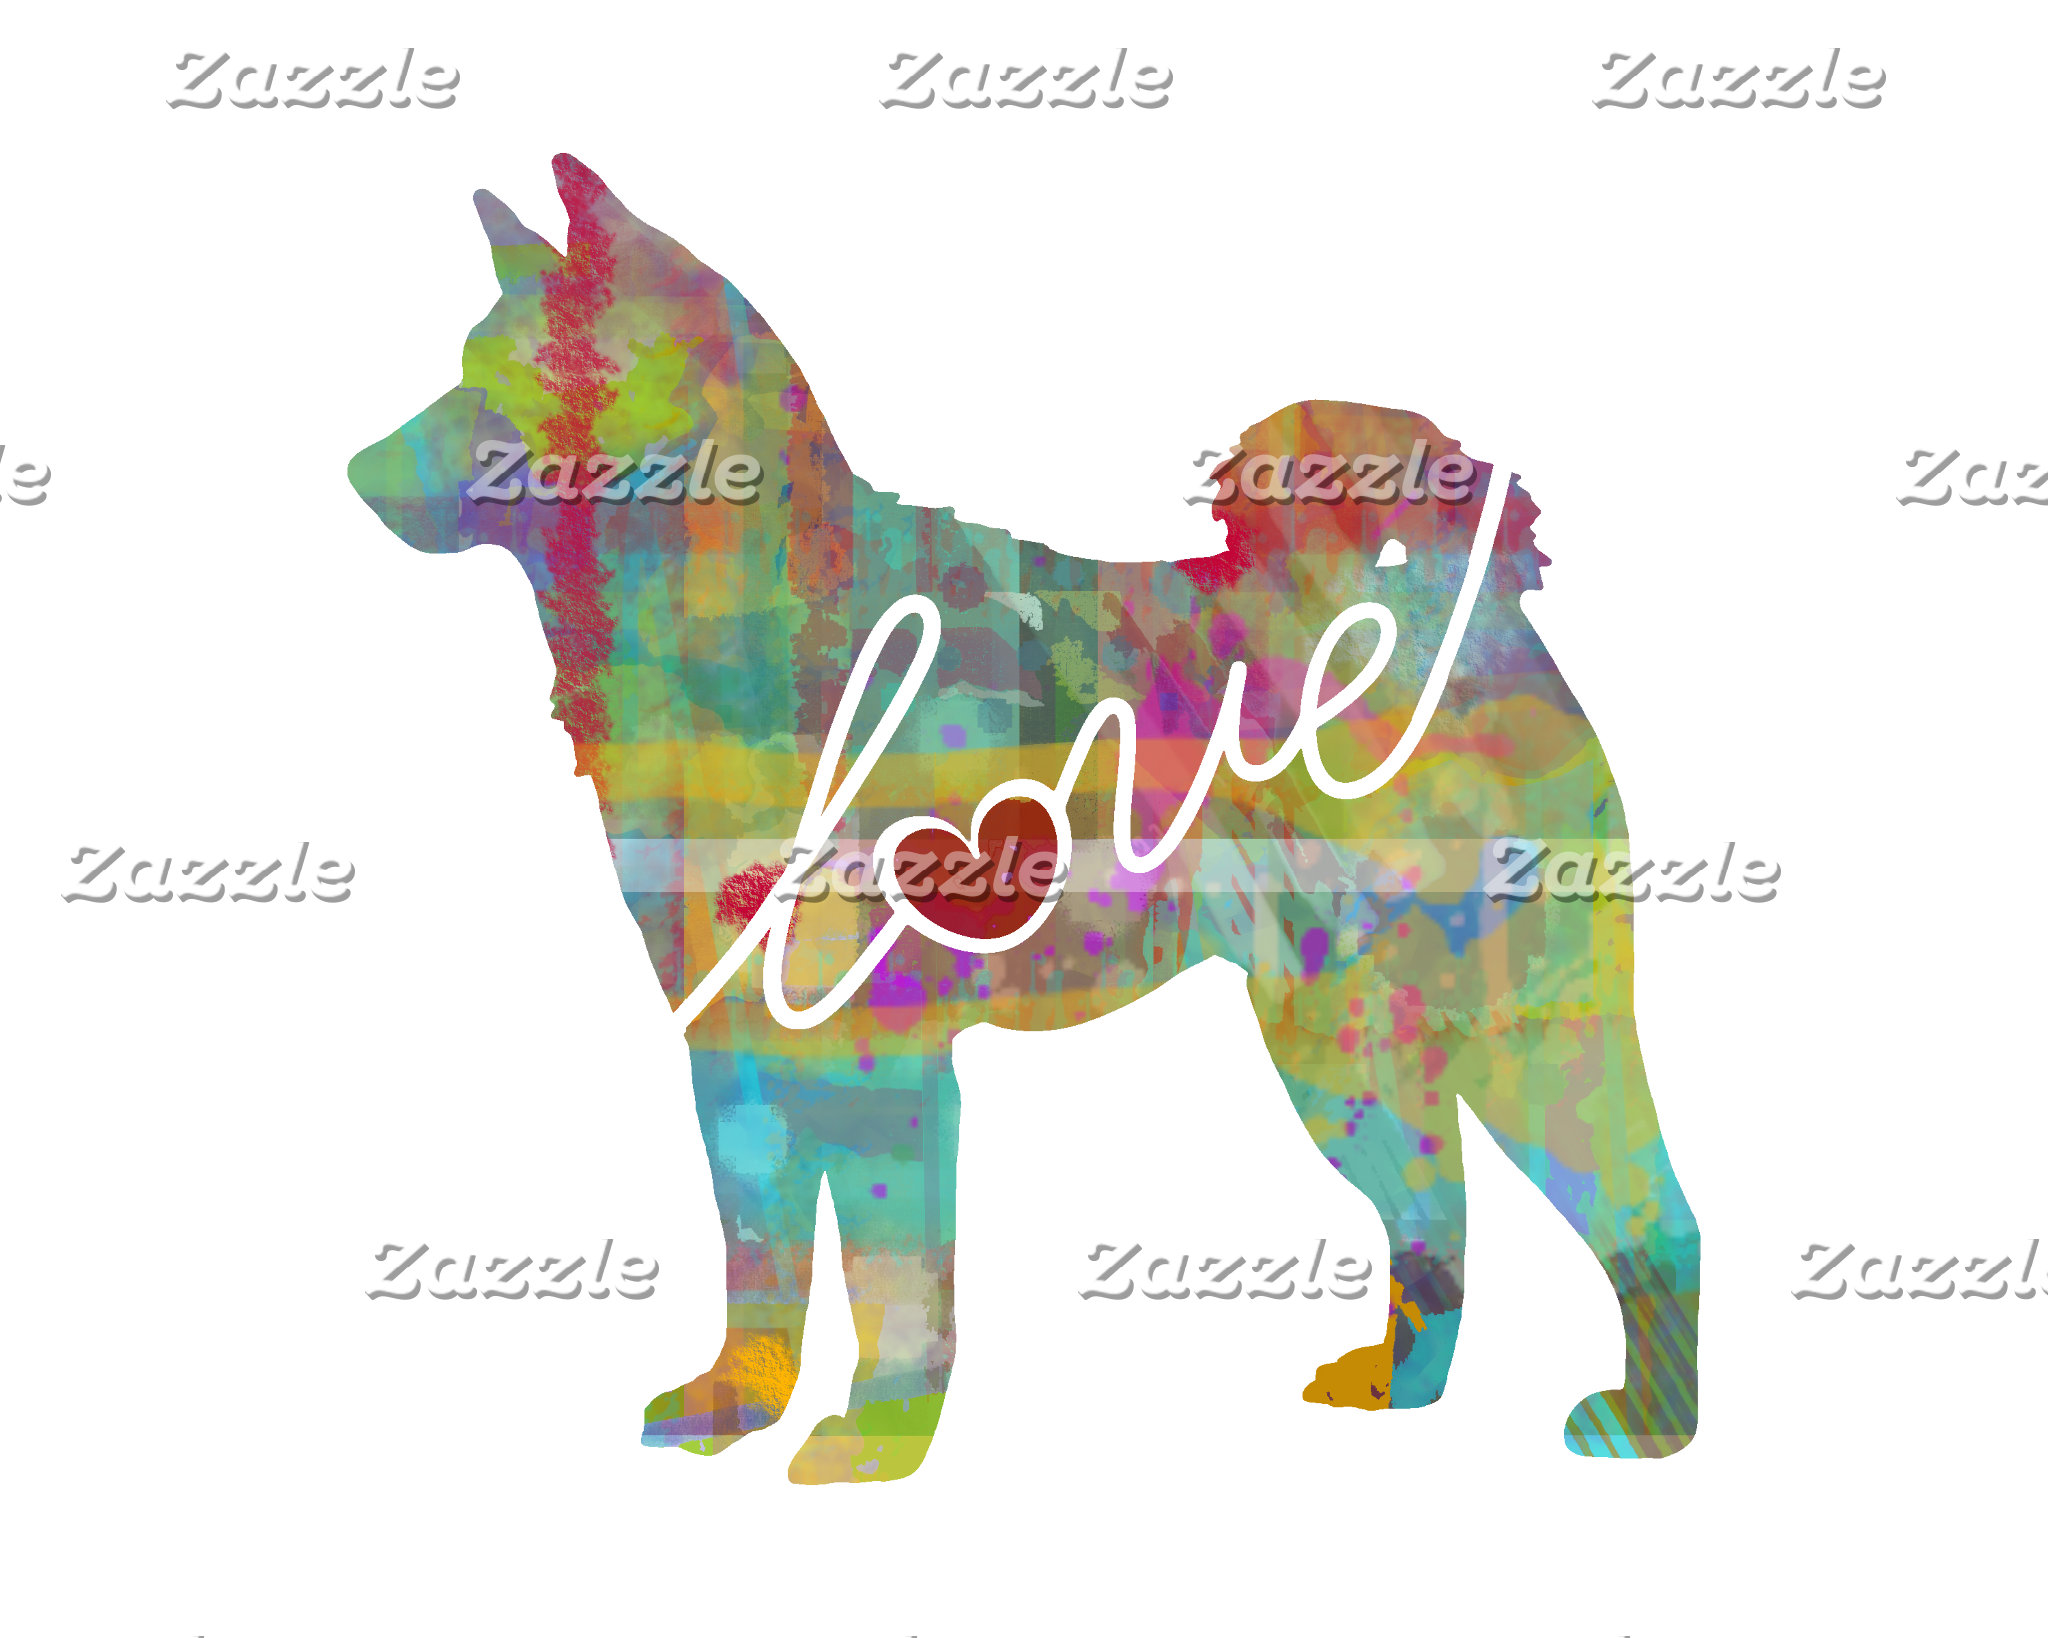 Watercolor-Style Dog Art & Gifts